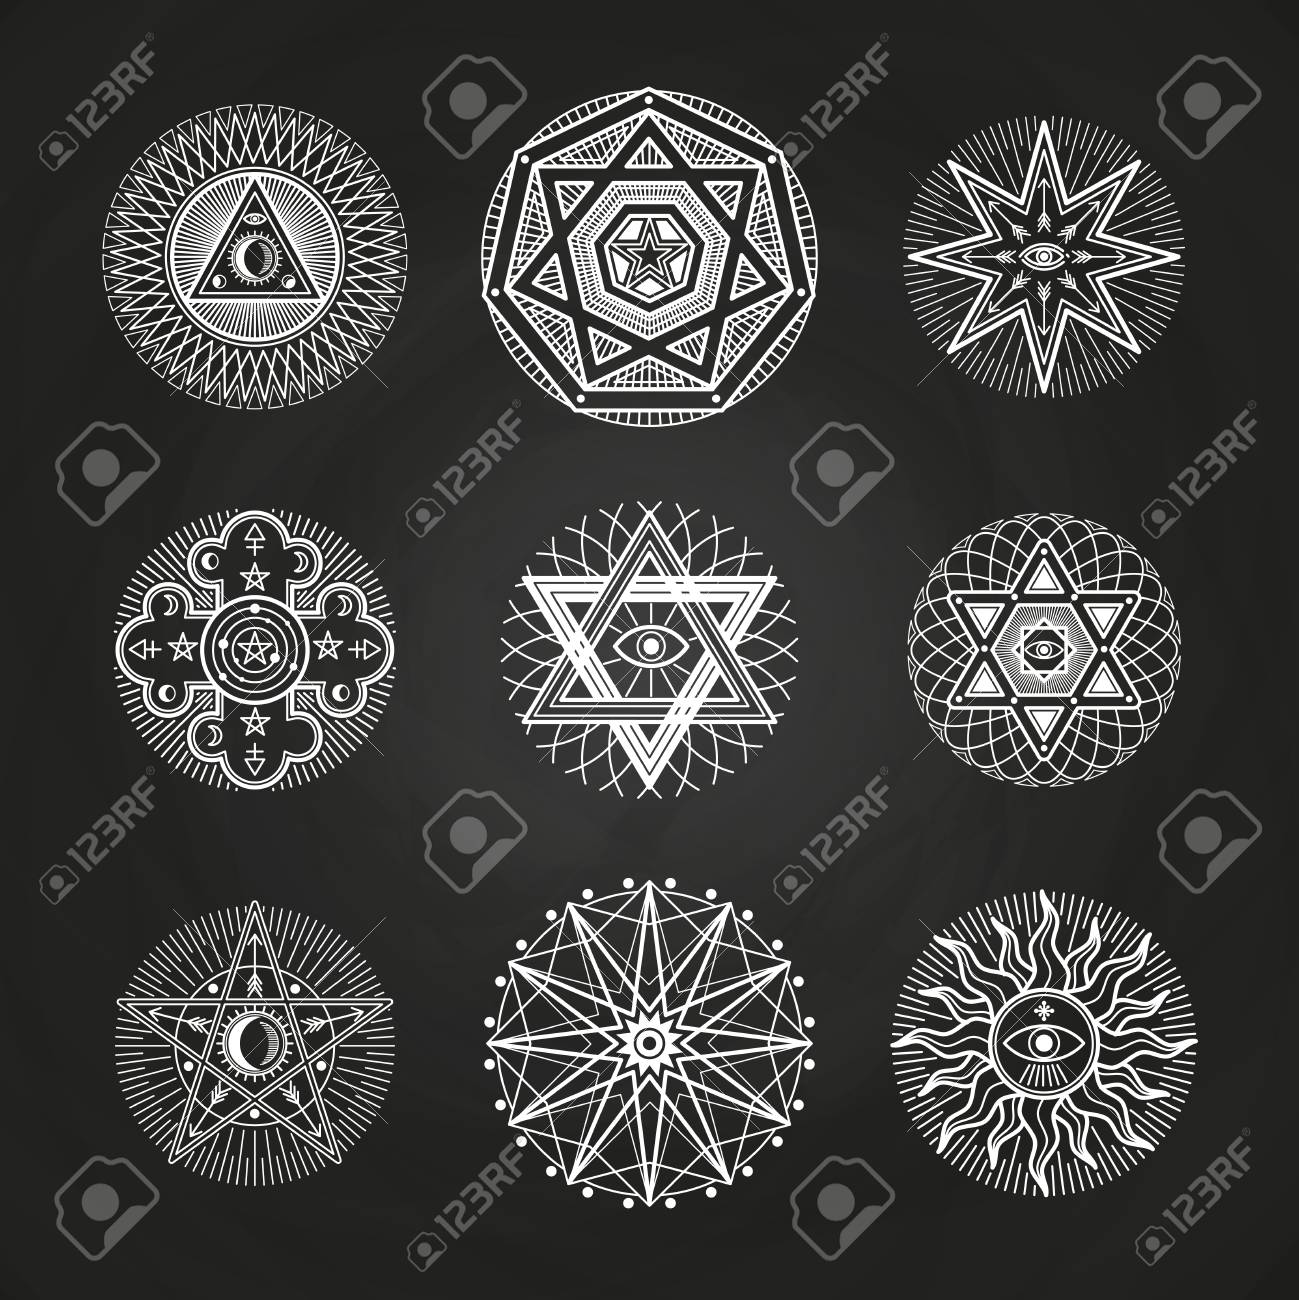 White Mystery Occult Alchemy Mystical Esoteric Symbols On